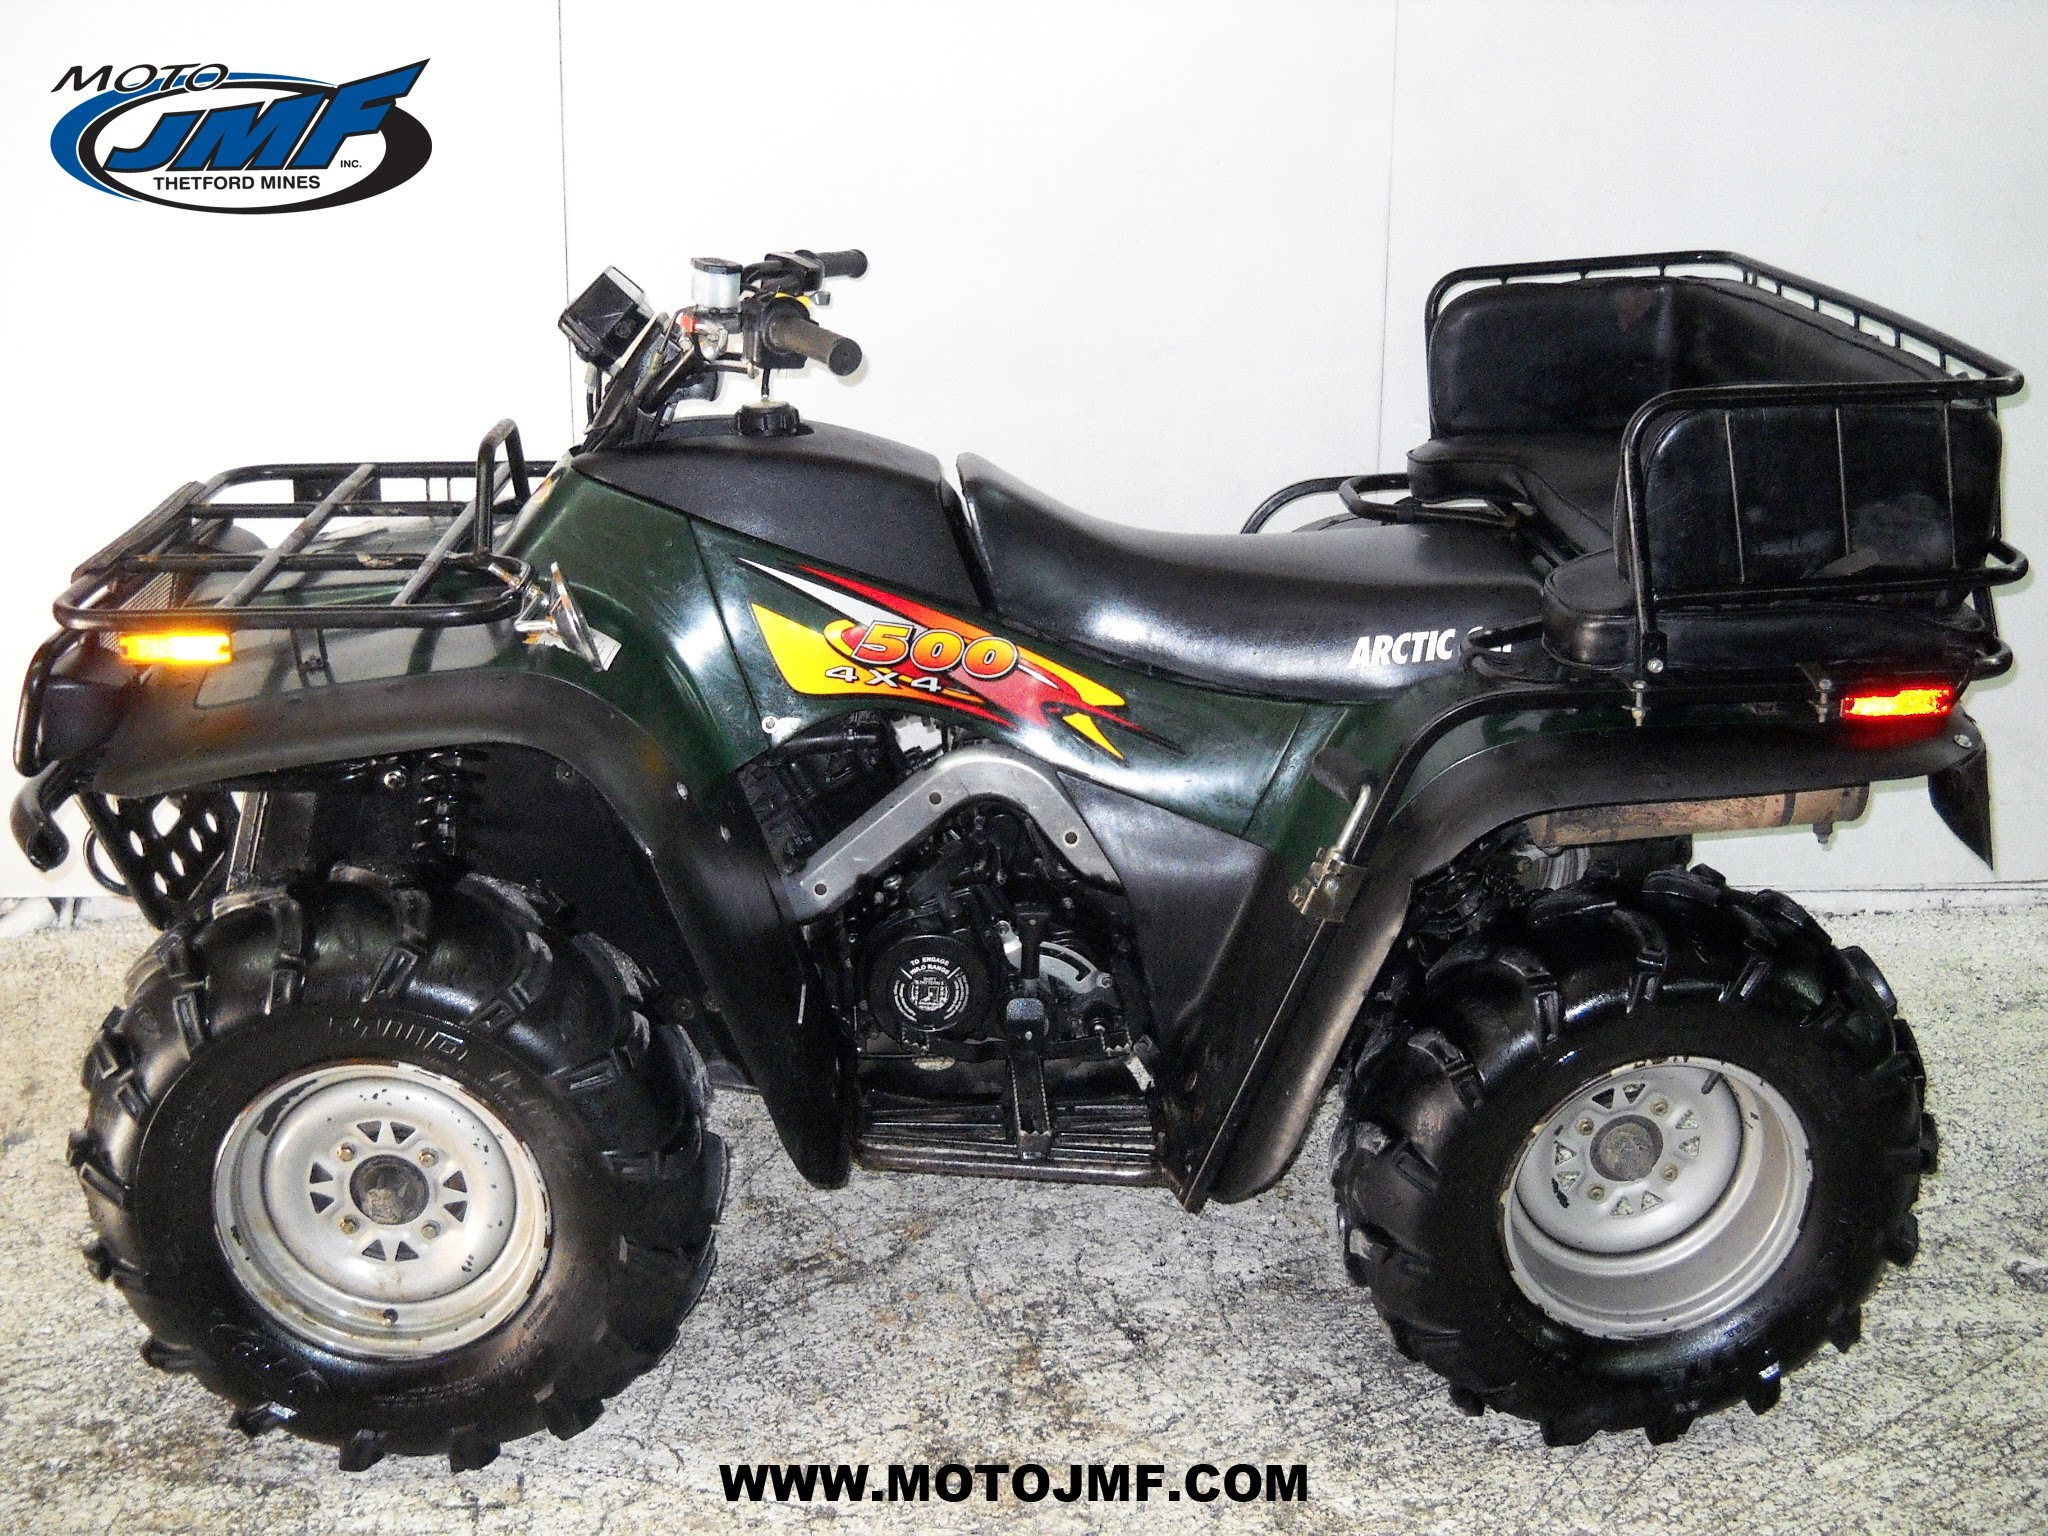 Wiring Schematic For 1998 Arctic Cat 500 Atv - Wiring ...